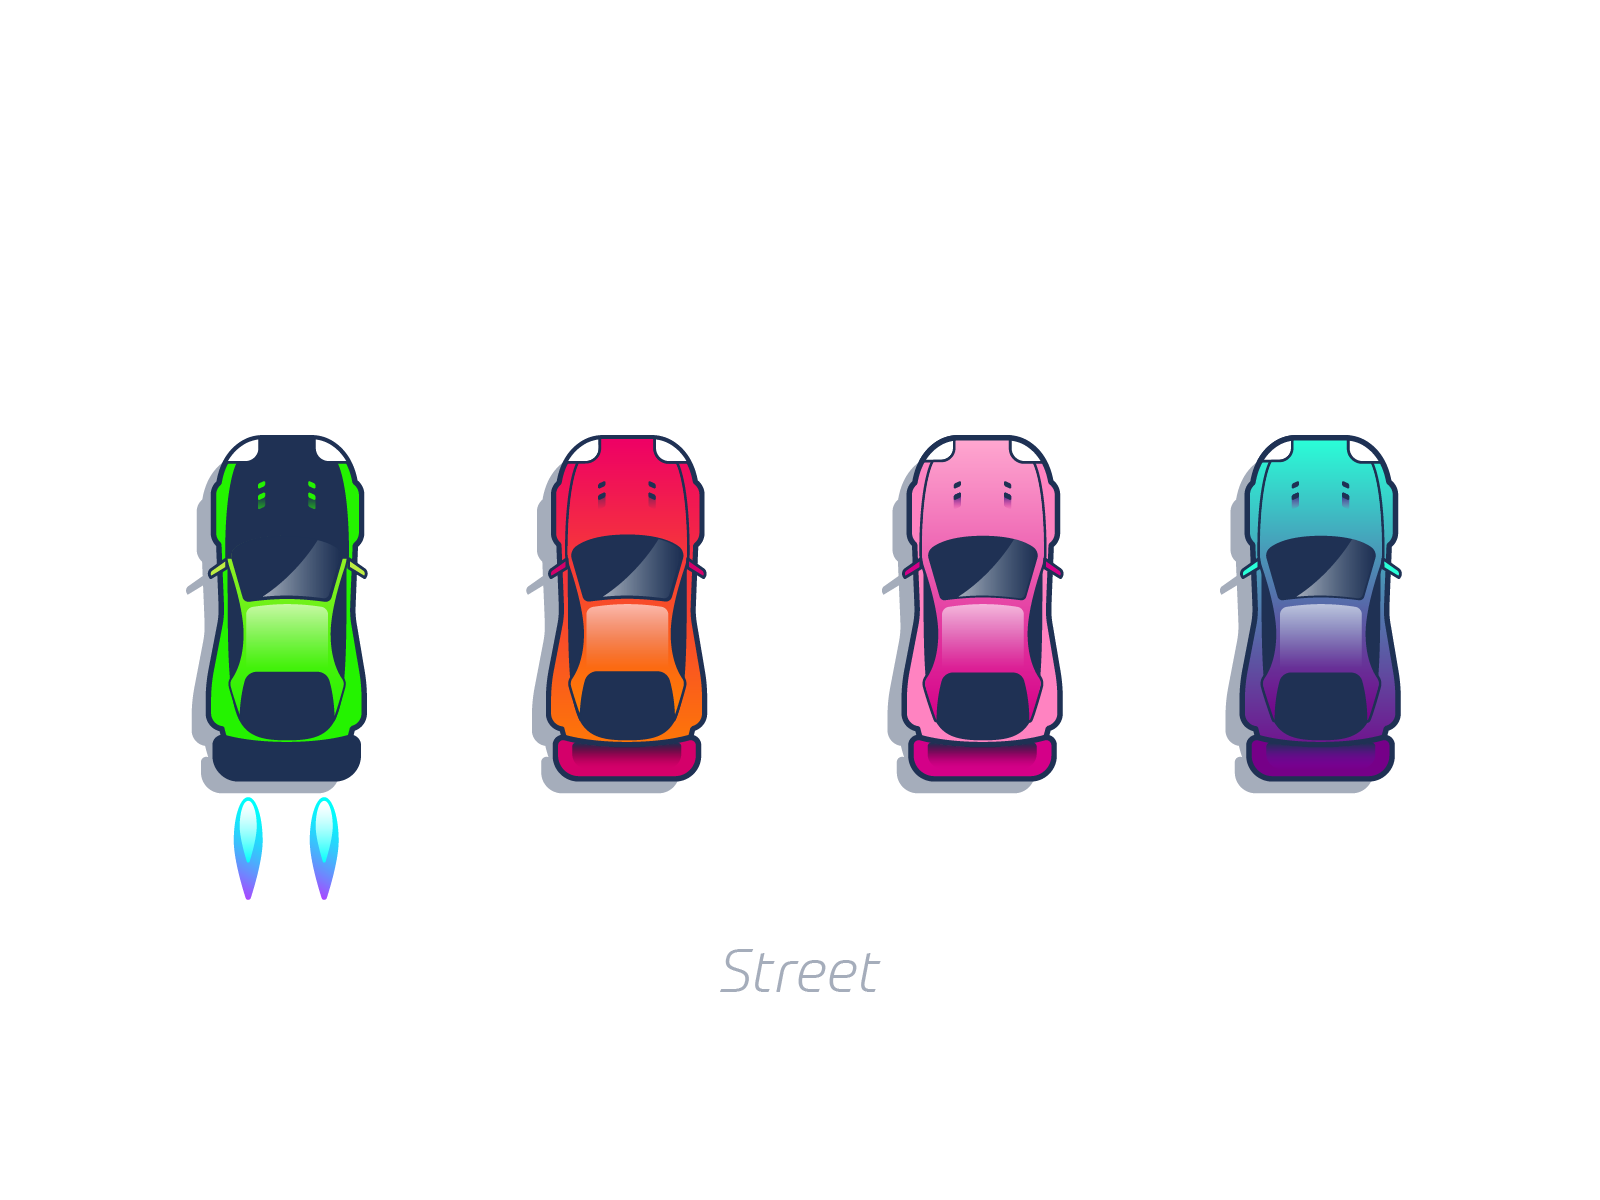 Street cars mobile game graphic design